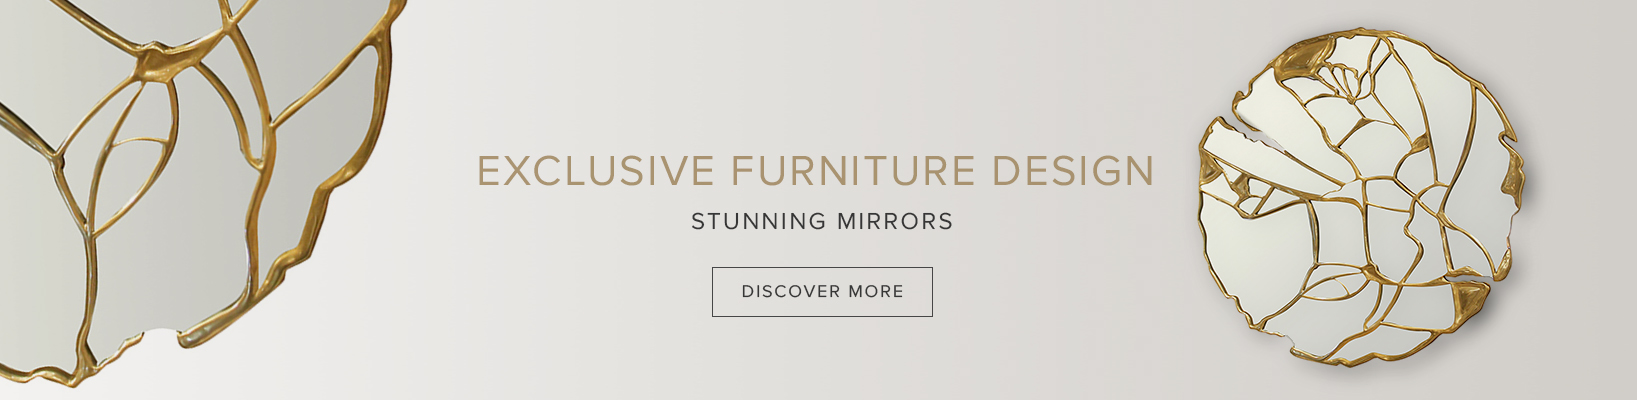 Exclusive Mirrors For Your Home Decor françois catroux François Catroux | The Best of The Iconic French Interior Designer banners 20glance